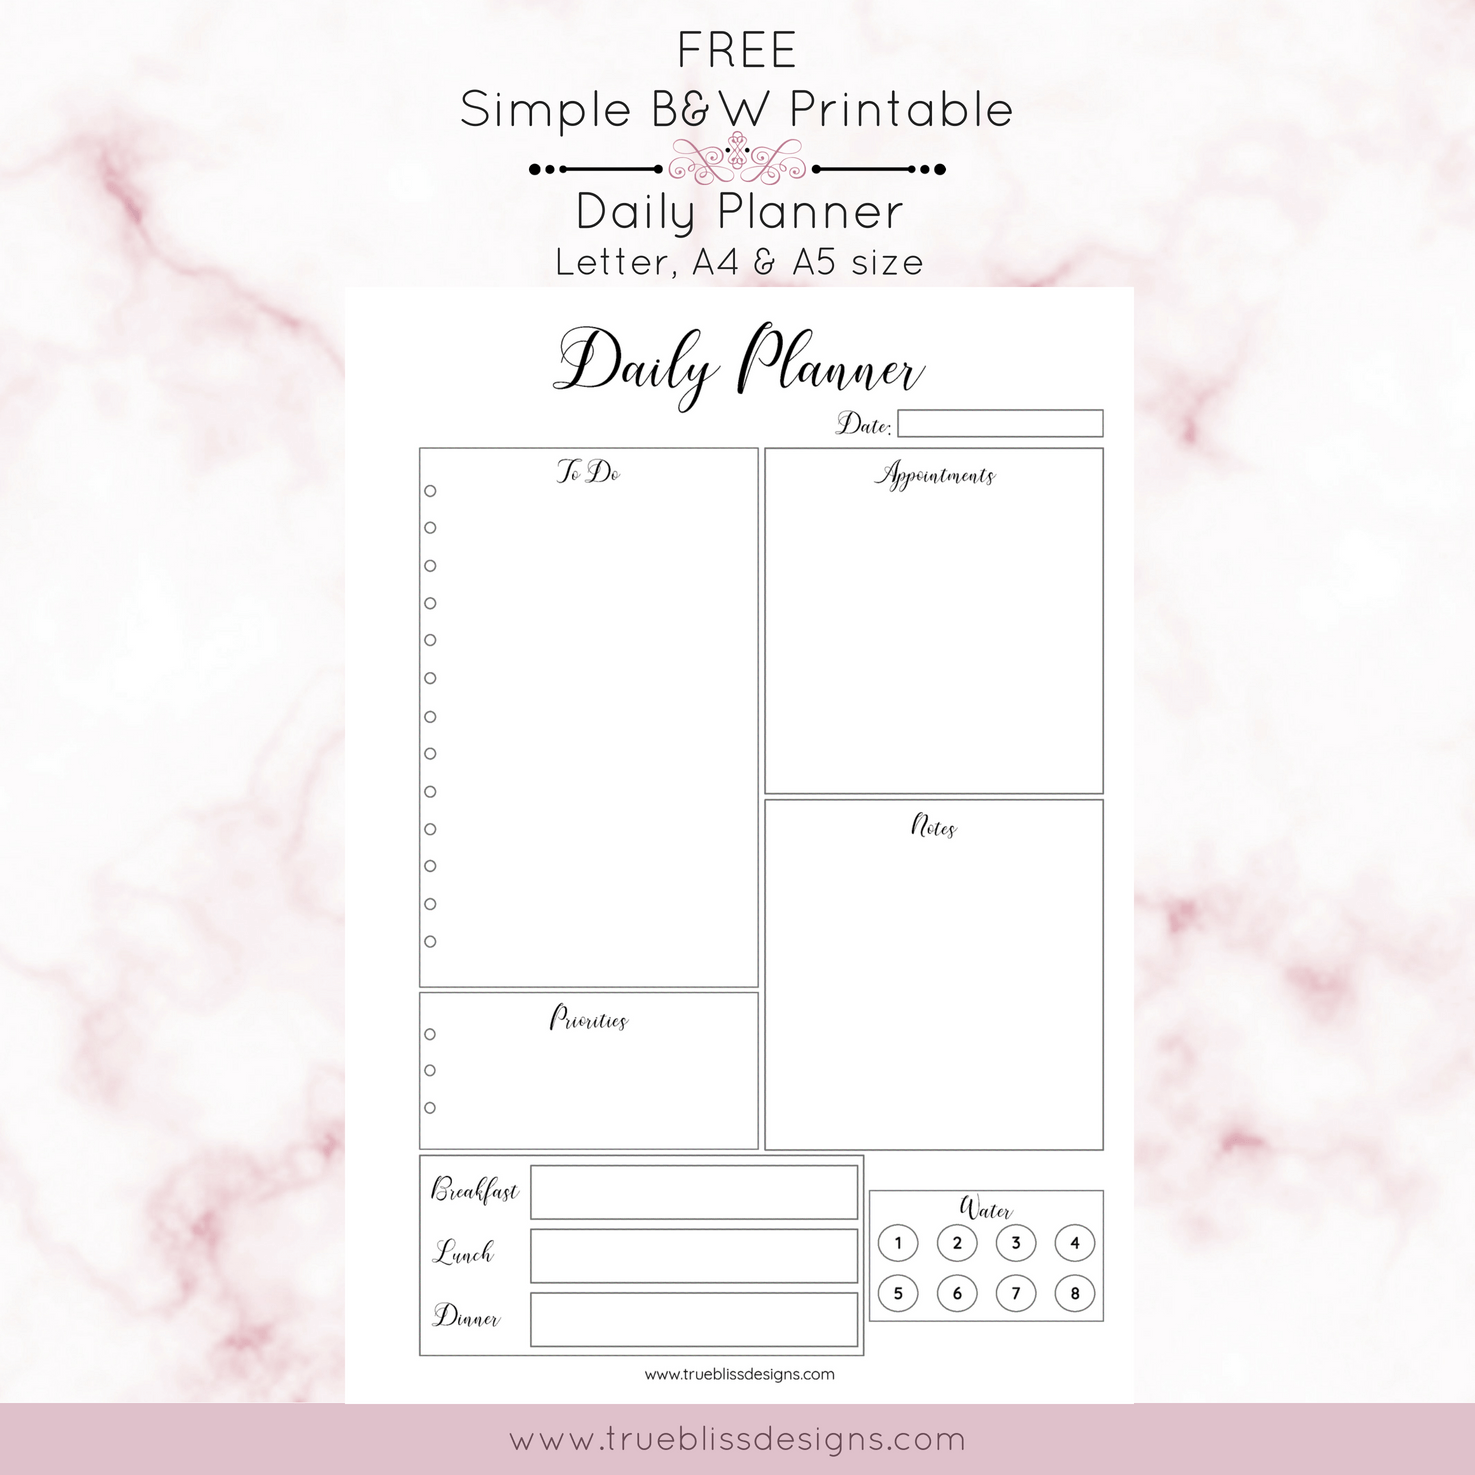 photo regarding Free A5 Planner Printables named Basic Black and White Printable Planners - Correct Bliss Programs